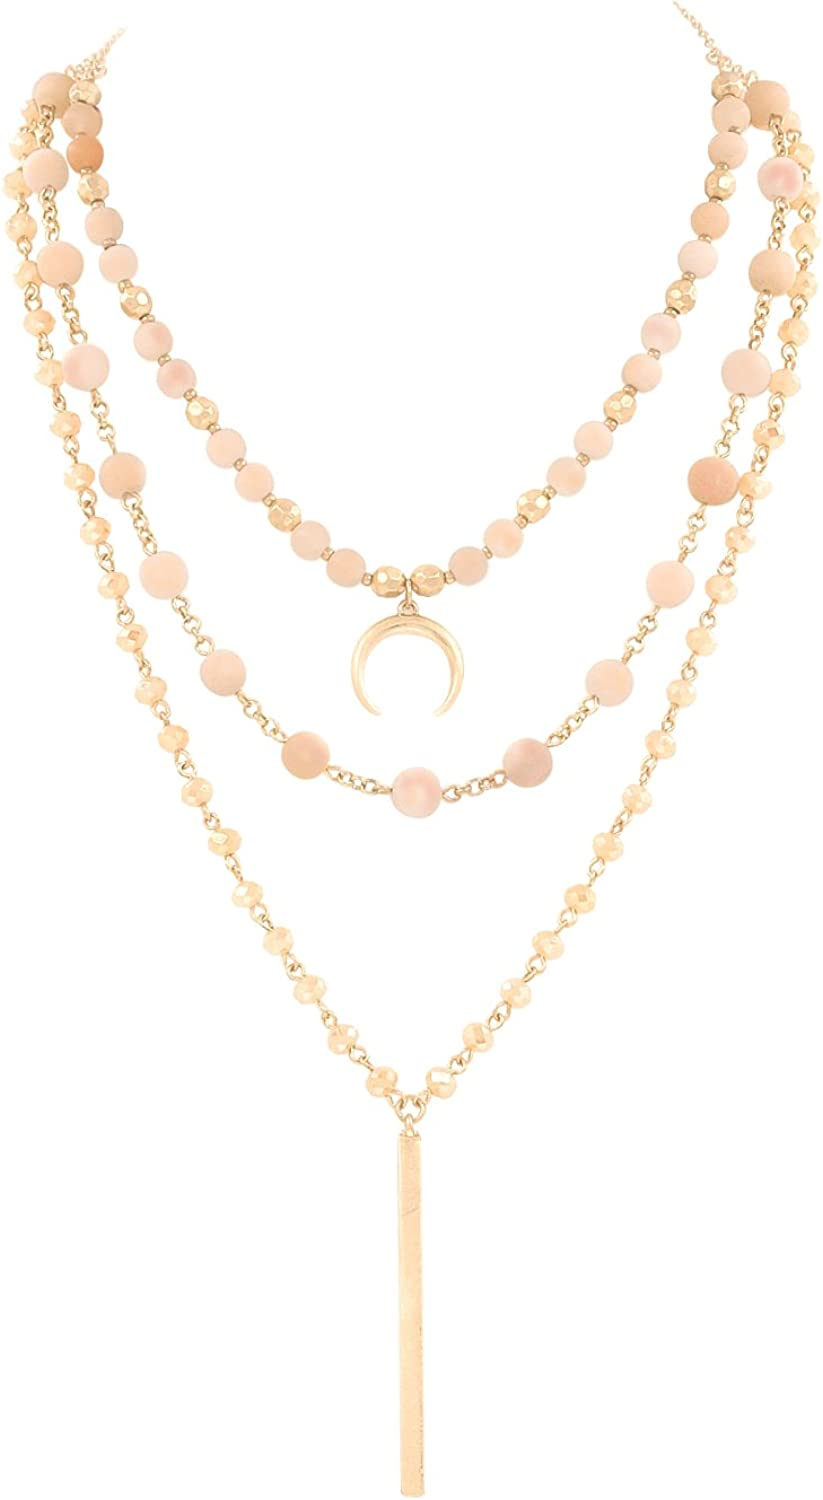 POMINA Peach Stone Iridescent Peach Glass Layered Necklace Gold-Tone 3 in 1 Removable Strands 16 Inch